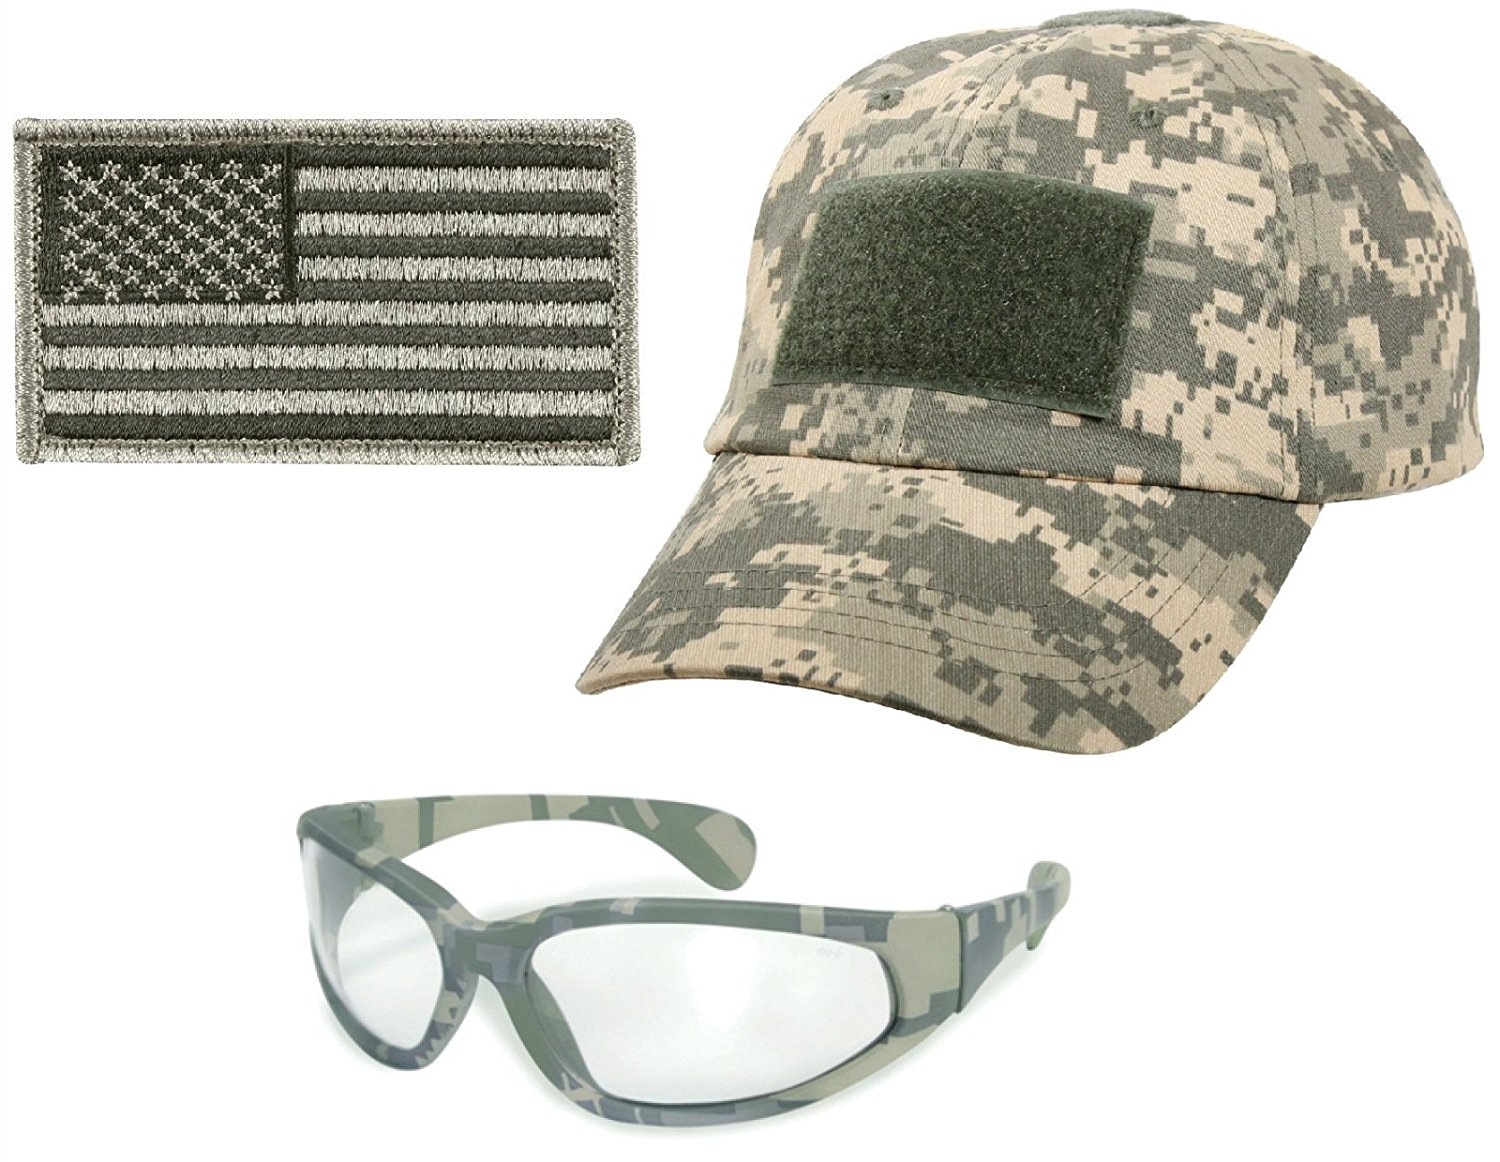 04affca7 Ultimate Arms Gear Tactical Combo Including Clear Lens Carbonate ACU Army  Digital Camo Military Camouflage UV400